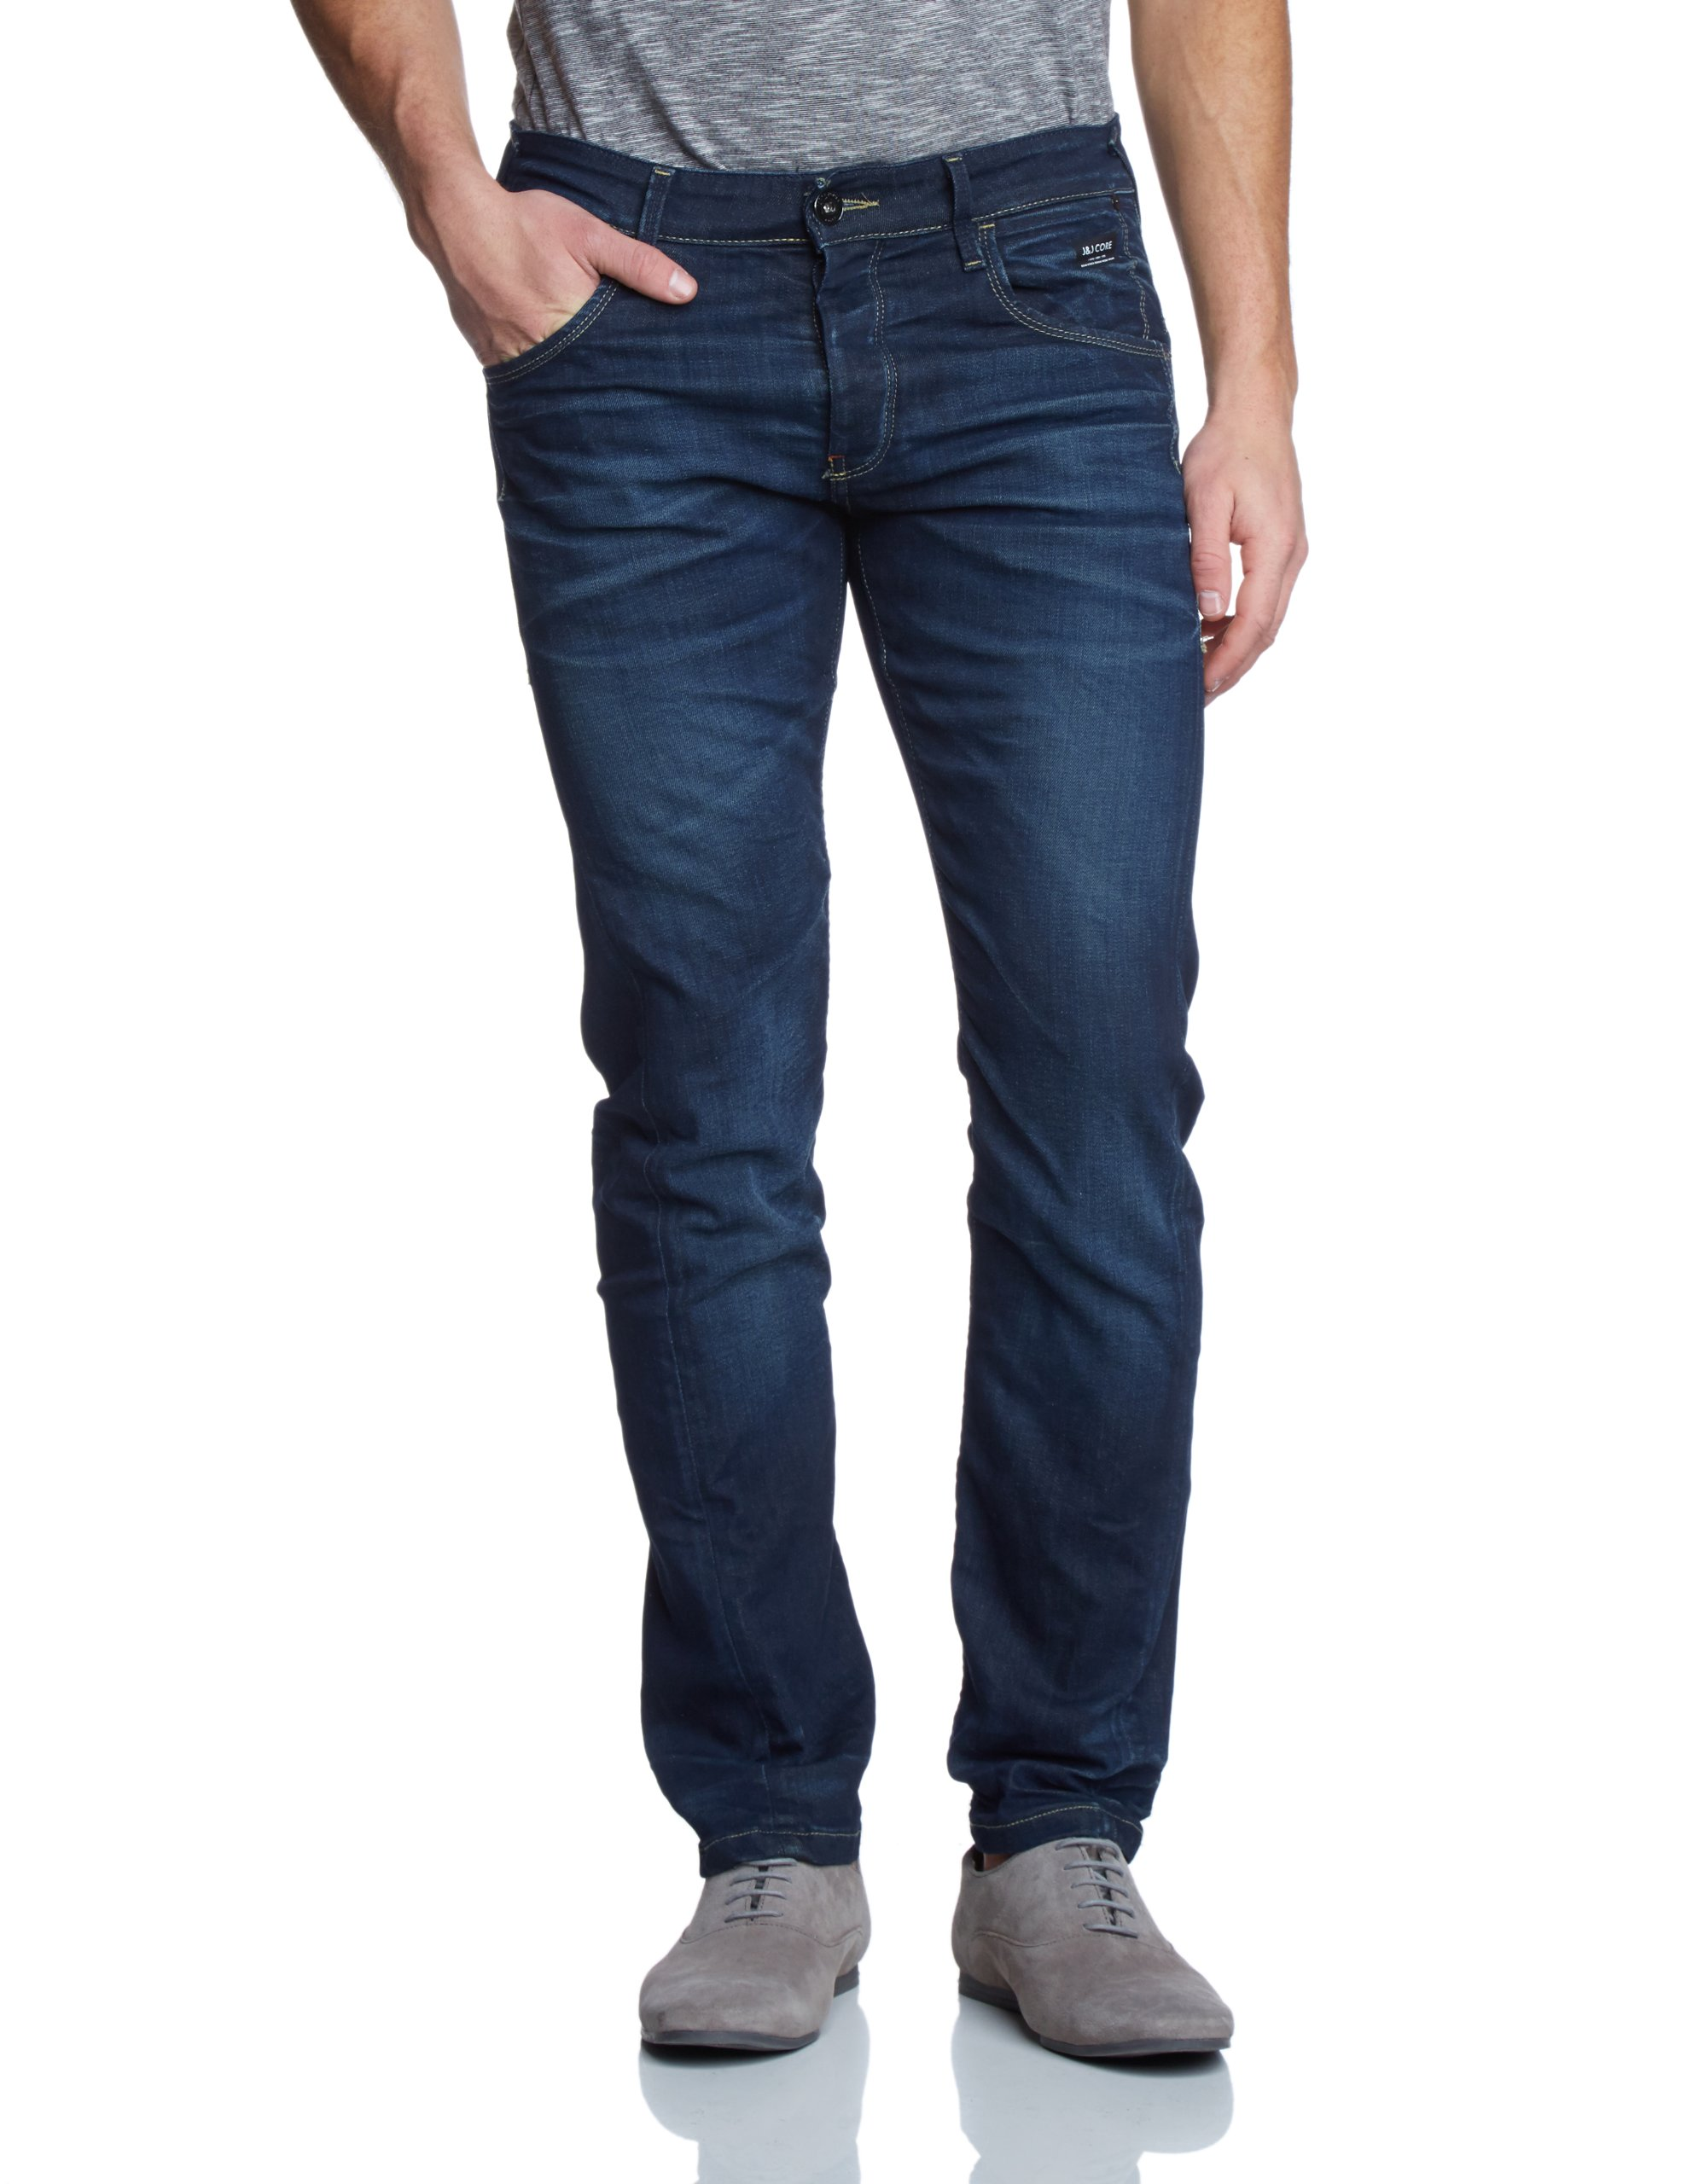 Denim bl LabJeans Nick Jackamp; W L wash Jones Bleumedium Slim Homme Blue 29134 36 MULSVzpqG